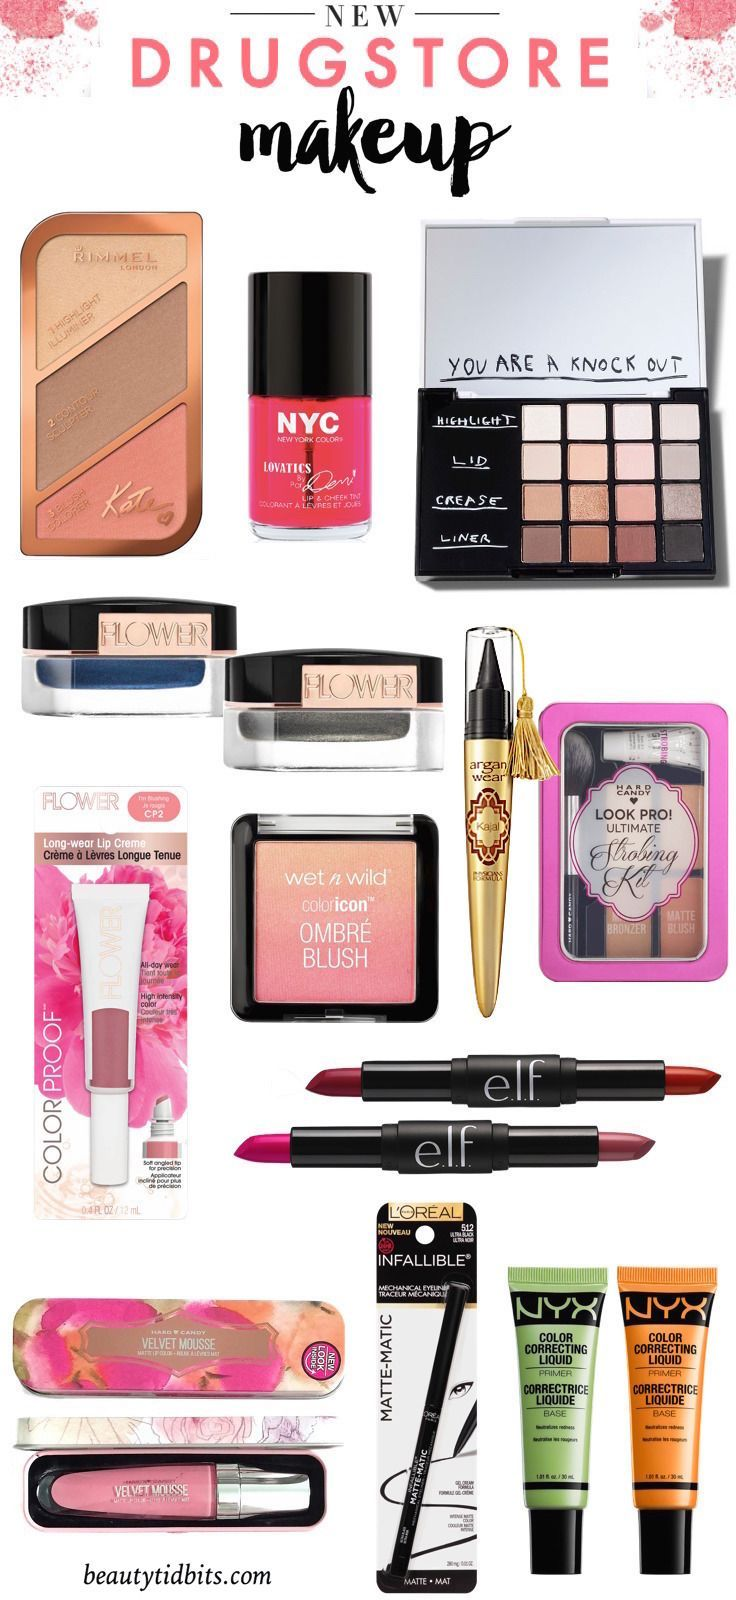 Here's a little taste of what's new in drugstore makeup! You're going to want to get your hands on most, if not all, of these new beauty products.